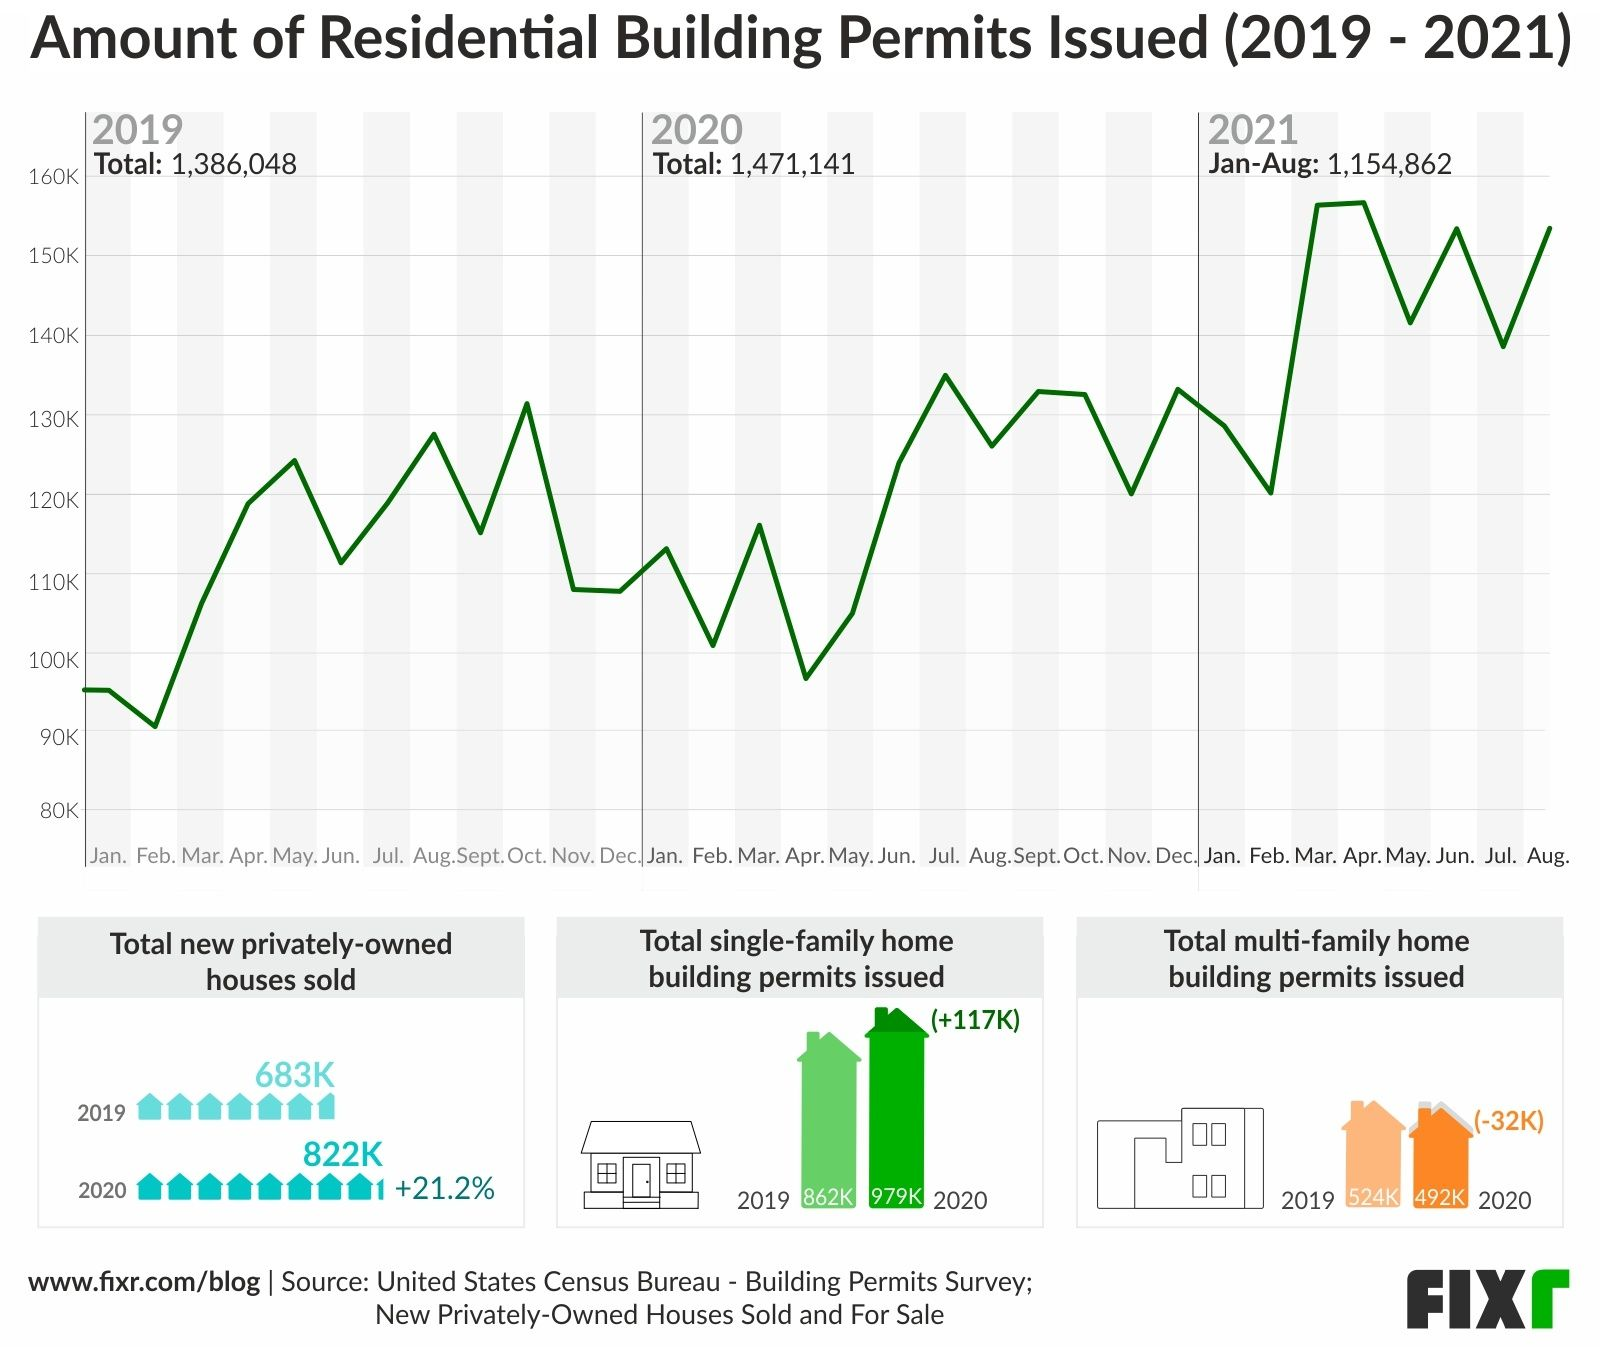 Building Permits Issued in 2021 vs 2020 vs 2019